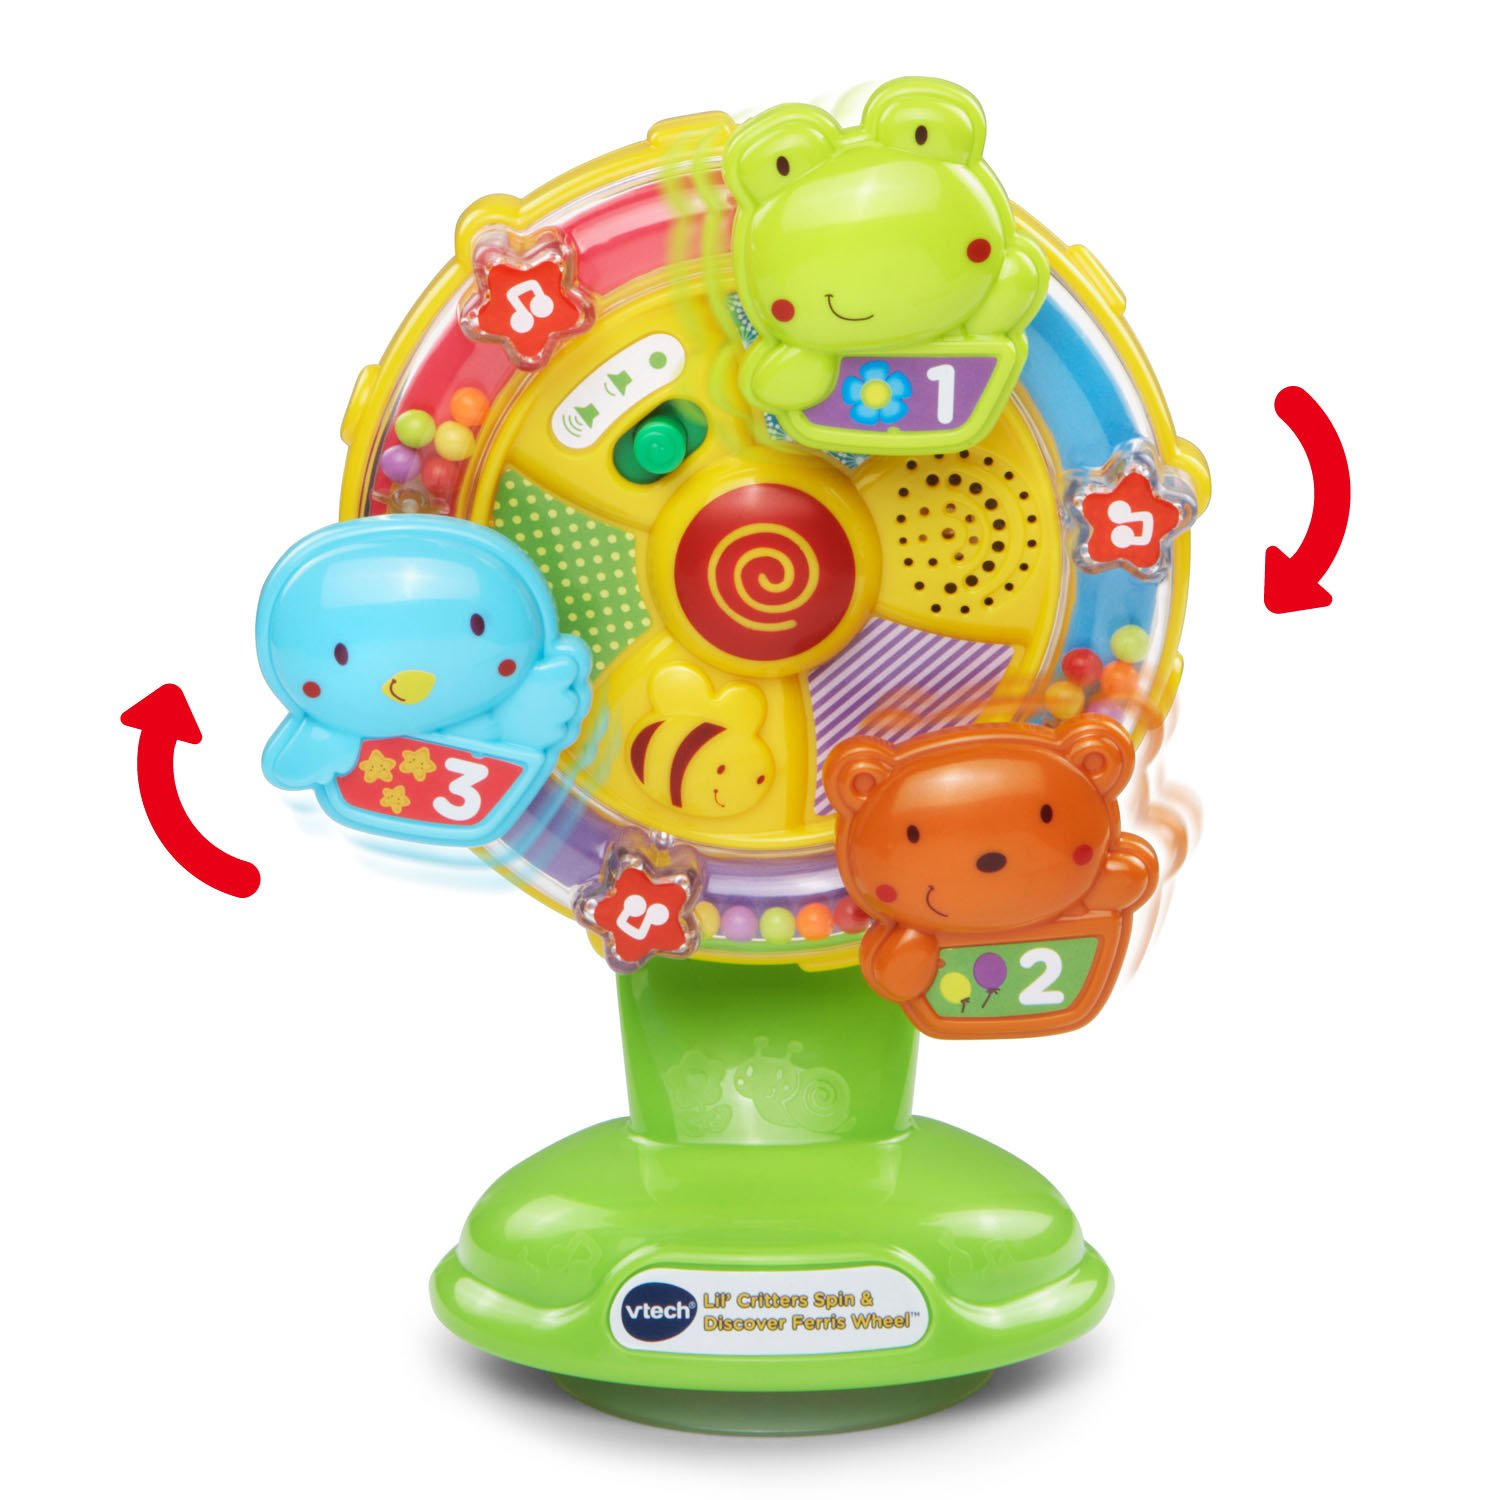 Amazon VTech Baby Lil Critters Spin and Discover Ferris